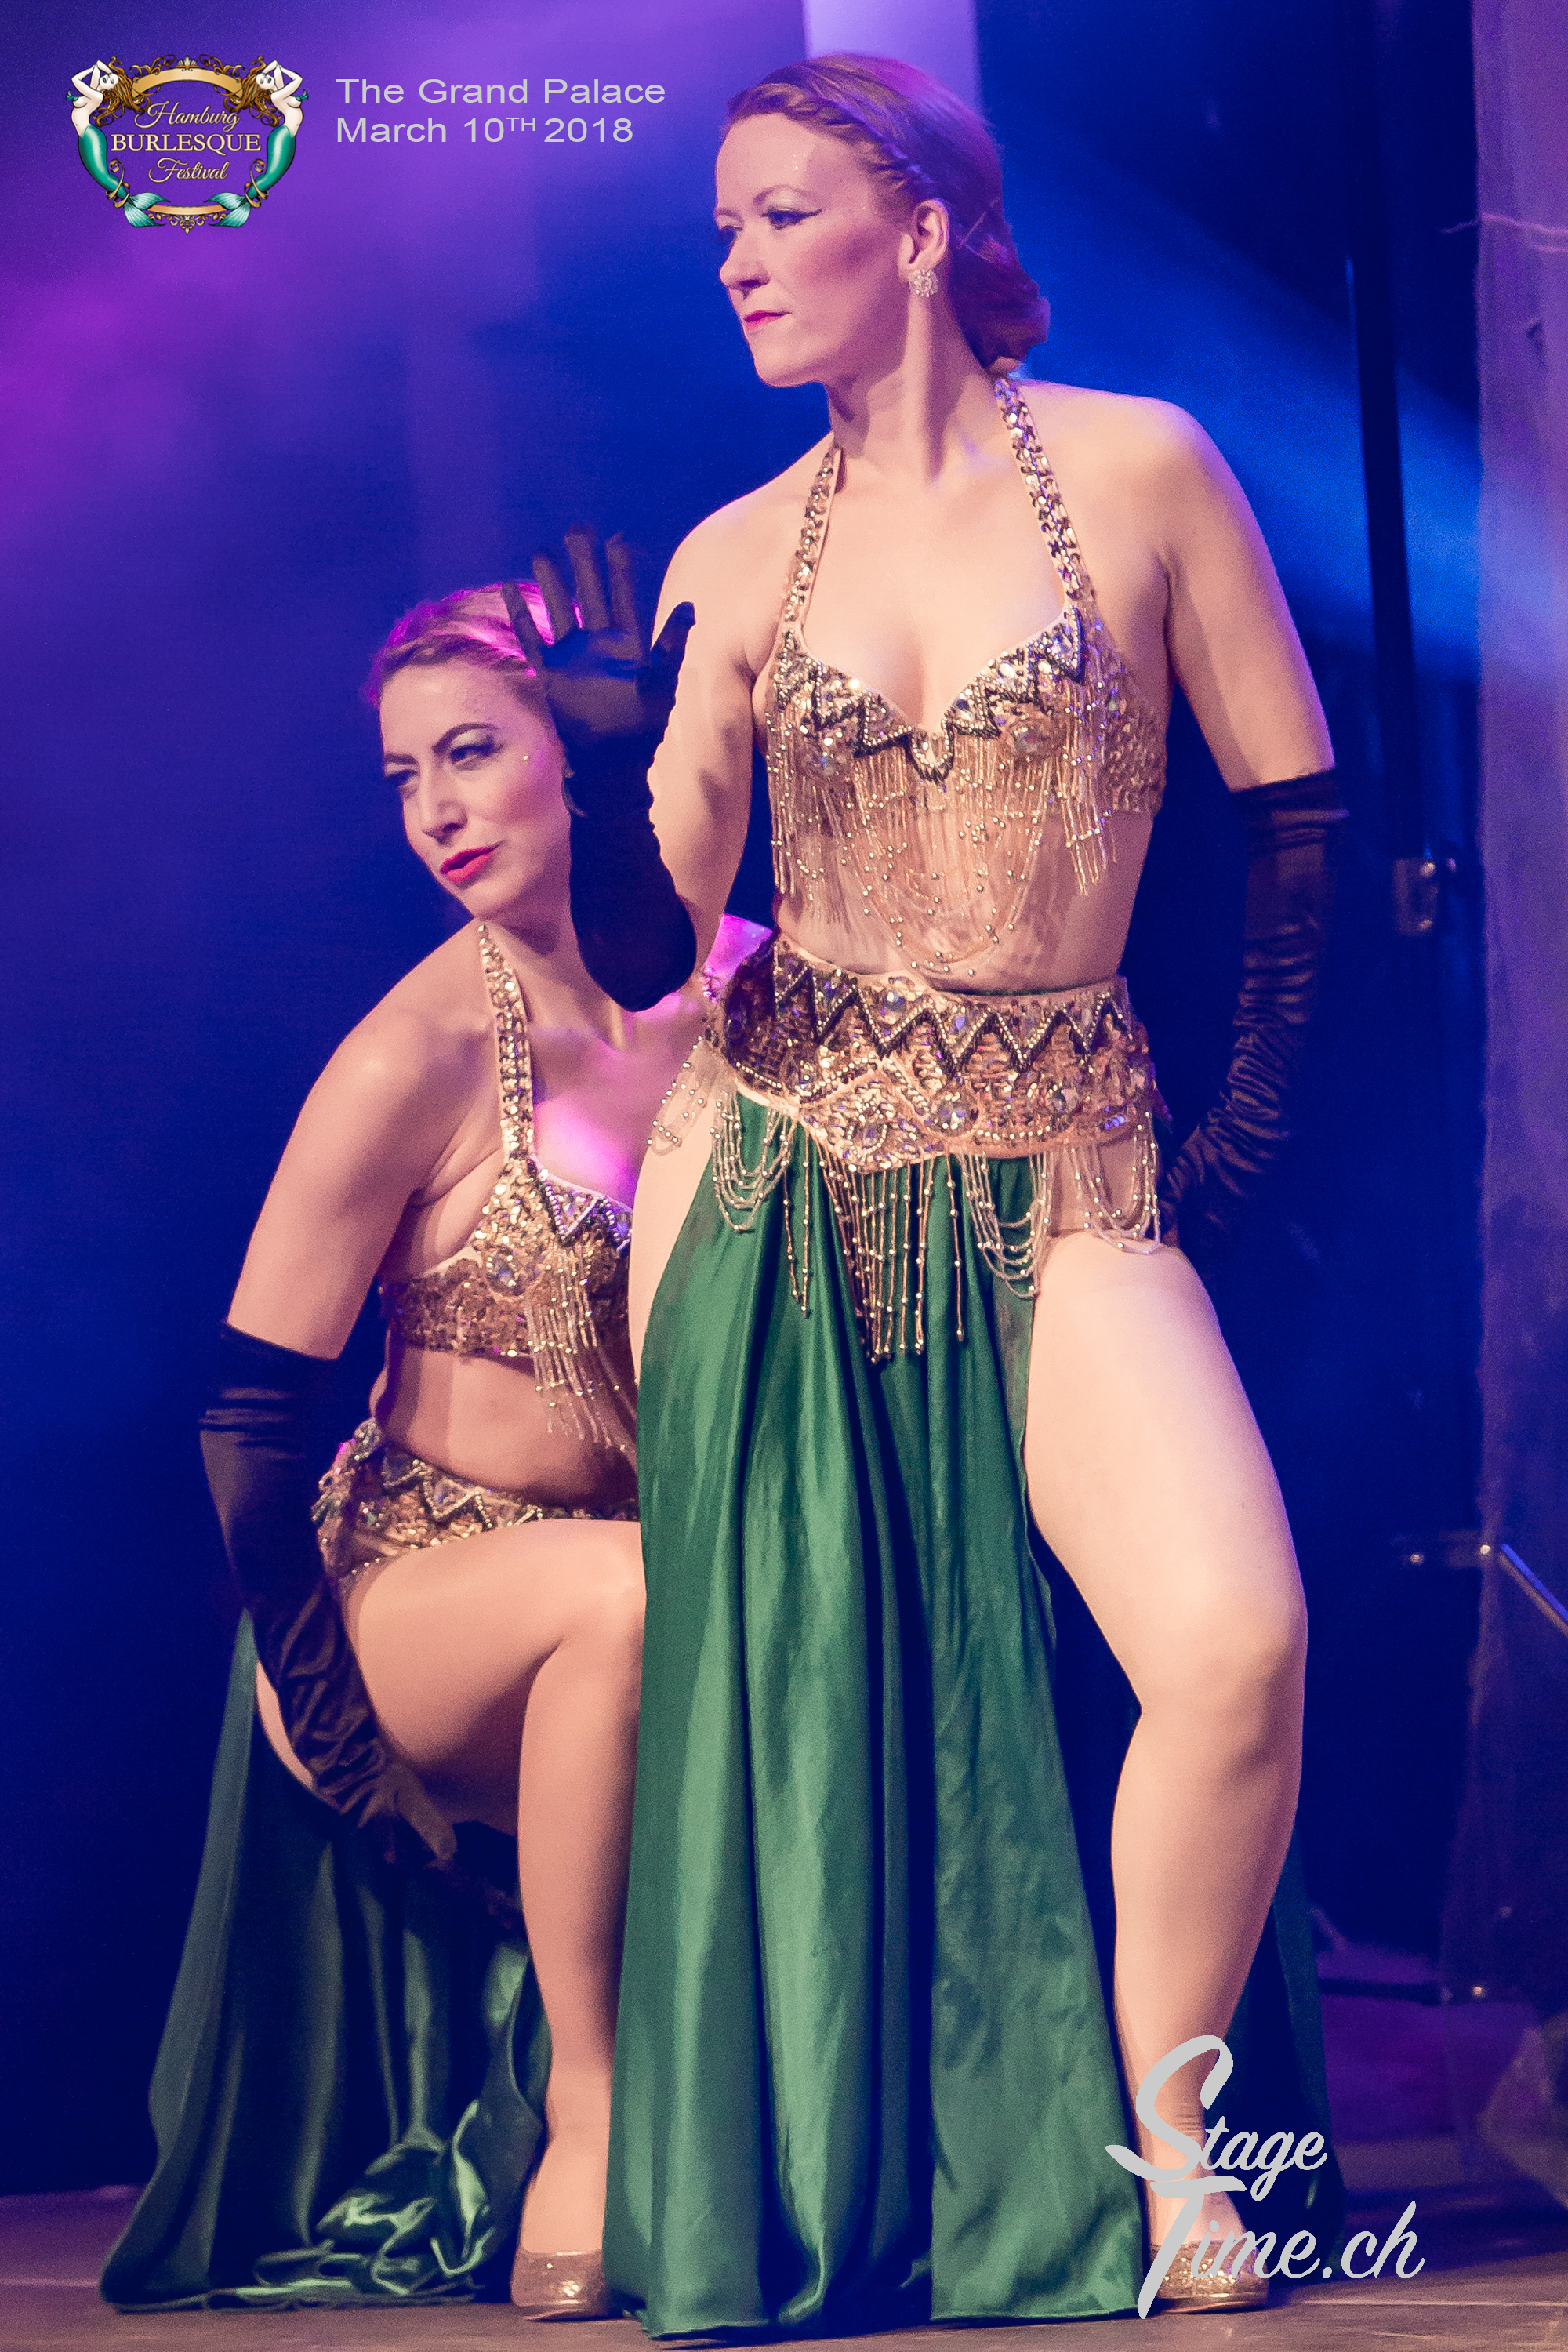 Hamburg_Burlesque_Festival_The_Grand_Palace__📷_Christoph_Gurtner_I_stagetime.ch-4